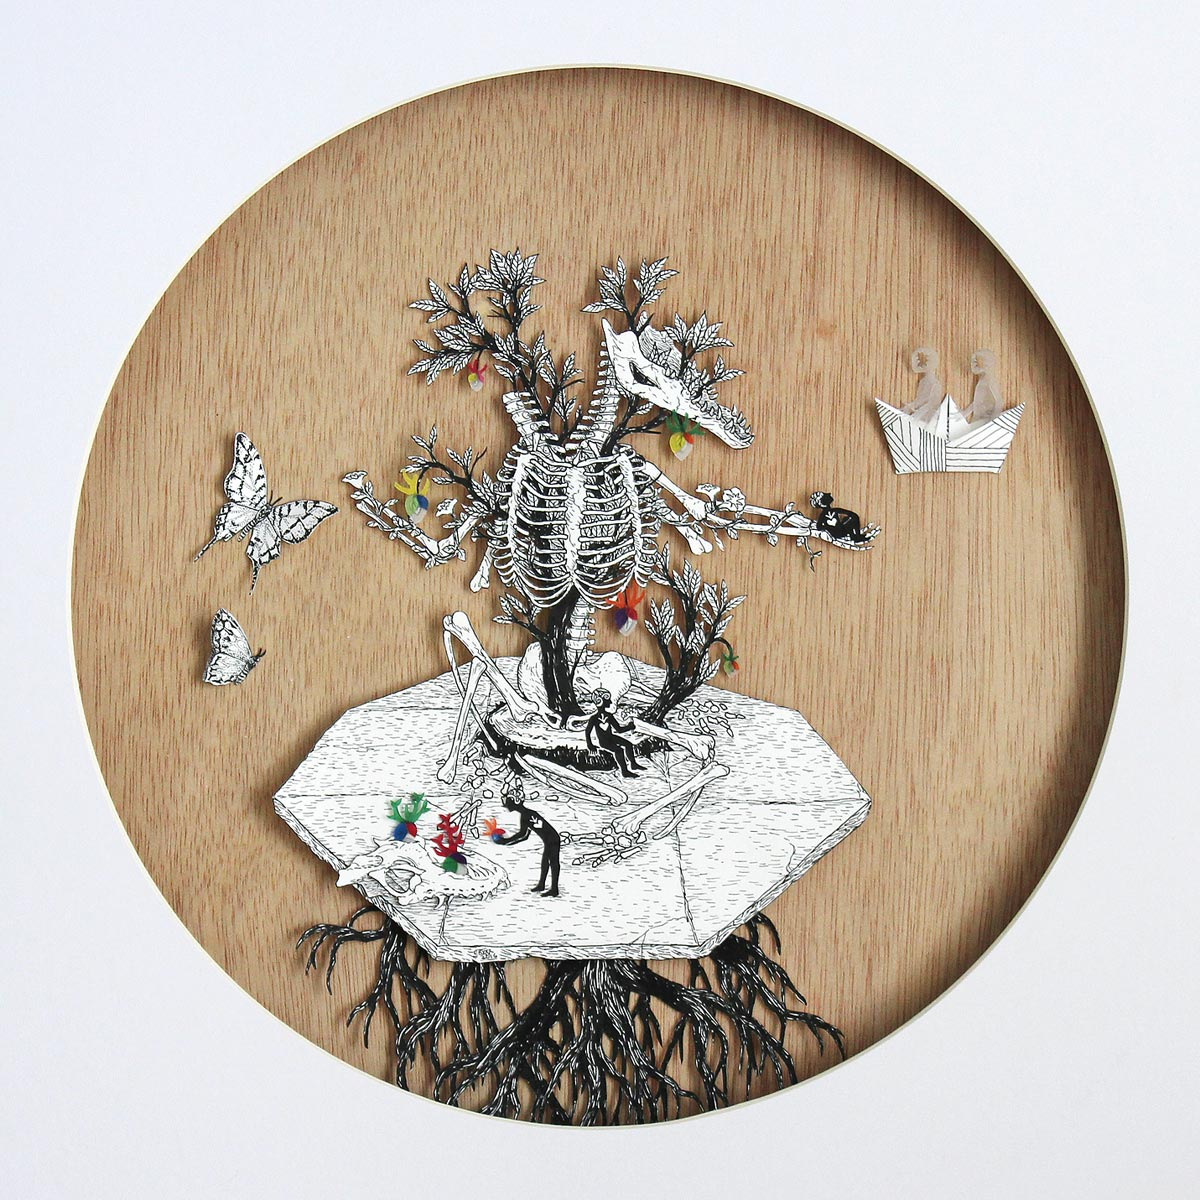 Vice and Versa (diptych 2) , Faber-Castell PITT pen on layered paper cutout on wood, 50x50cm, 2016